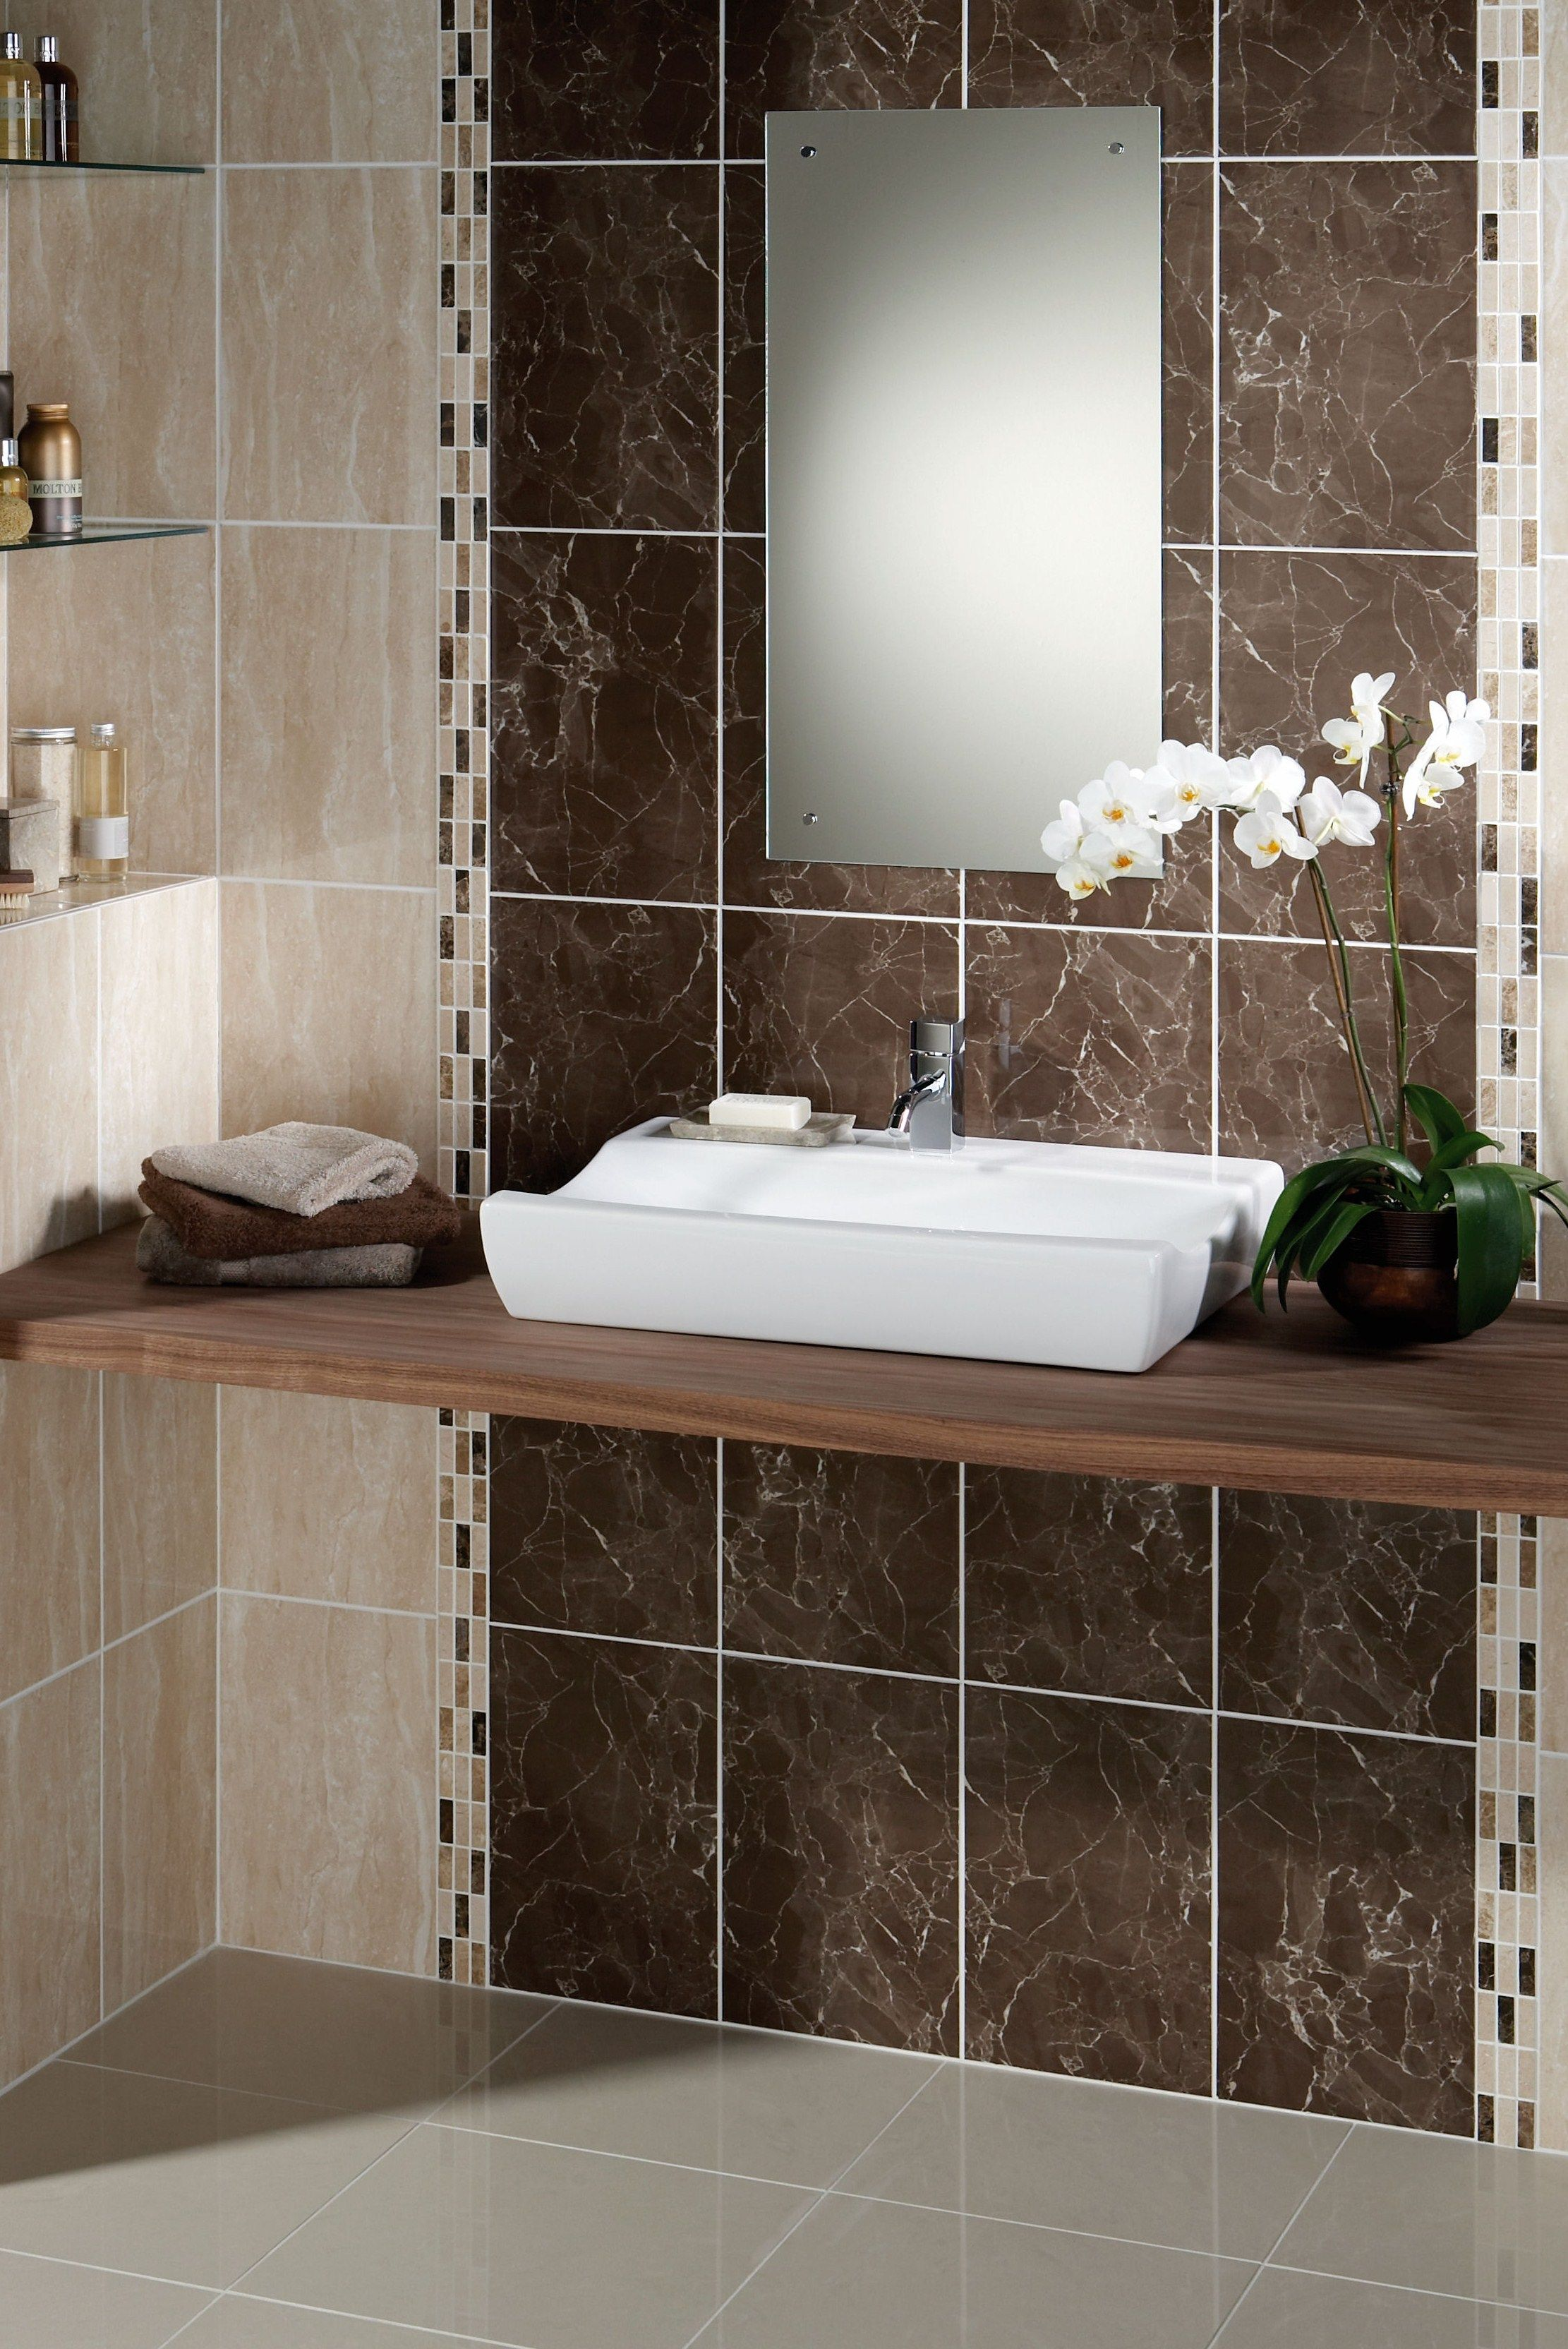 30 Great Pictures And Ideas Of Neutral Bathroom Tile Designs Ideas Bathroom Tiles Design Ideas Bathroom Tile Designs Modern Bathroom Tile